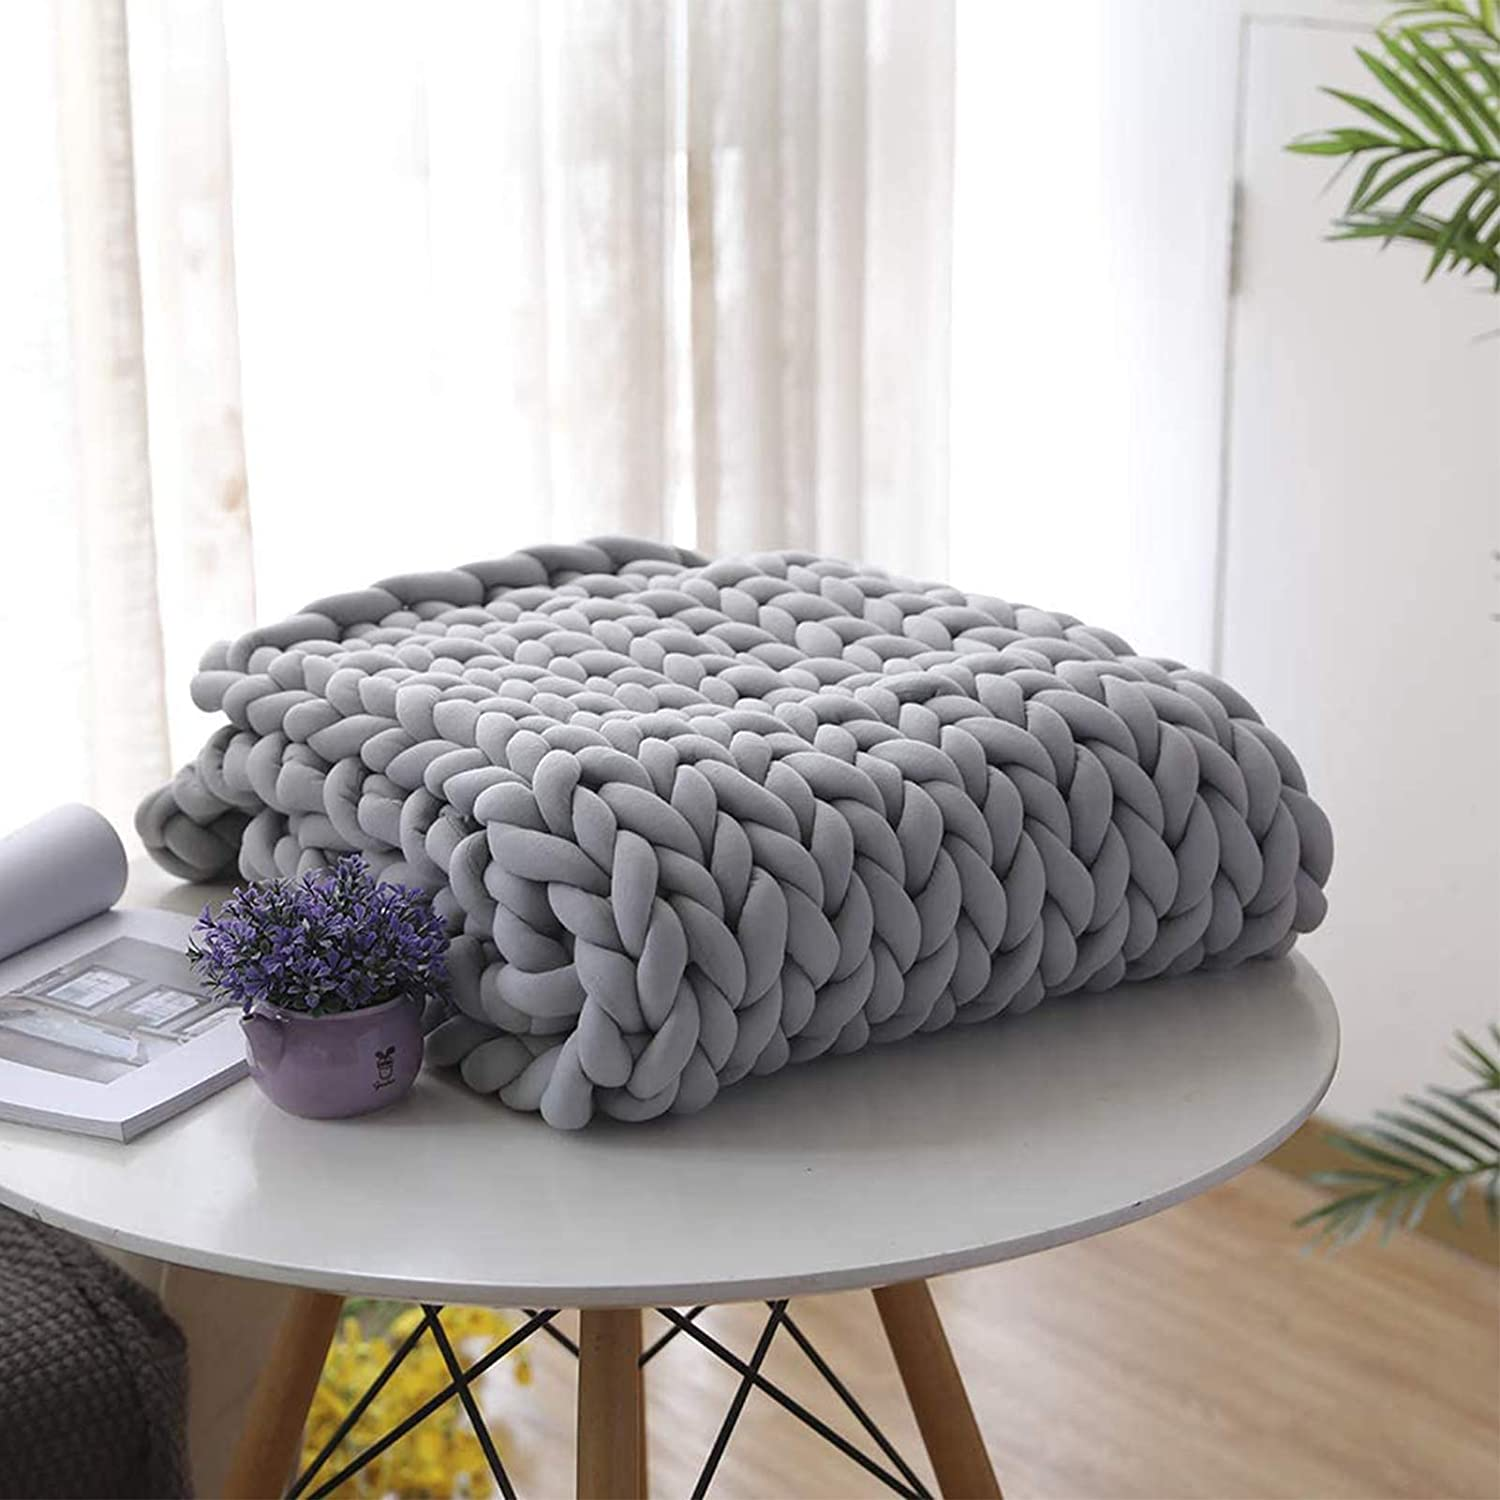 Challenge the lowest price of Japan ☆ Chunky Knit Blanket Throw Grey Gaint Knitted Blankets Limited Special Price Yarn Large